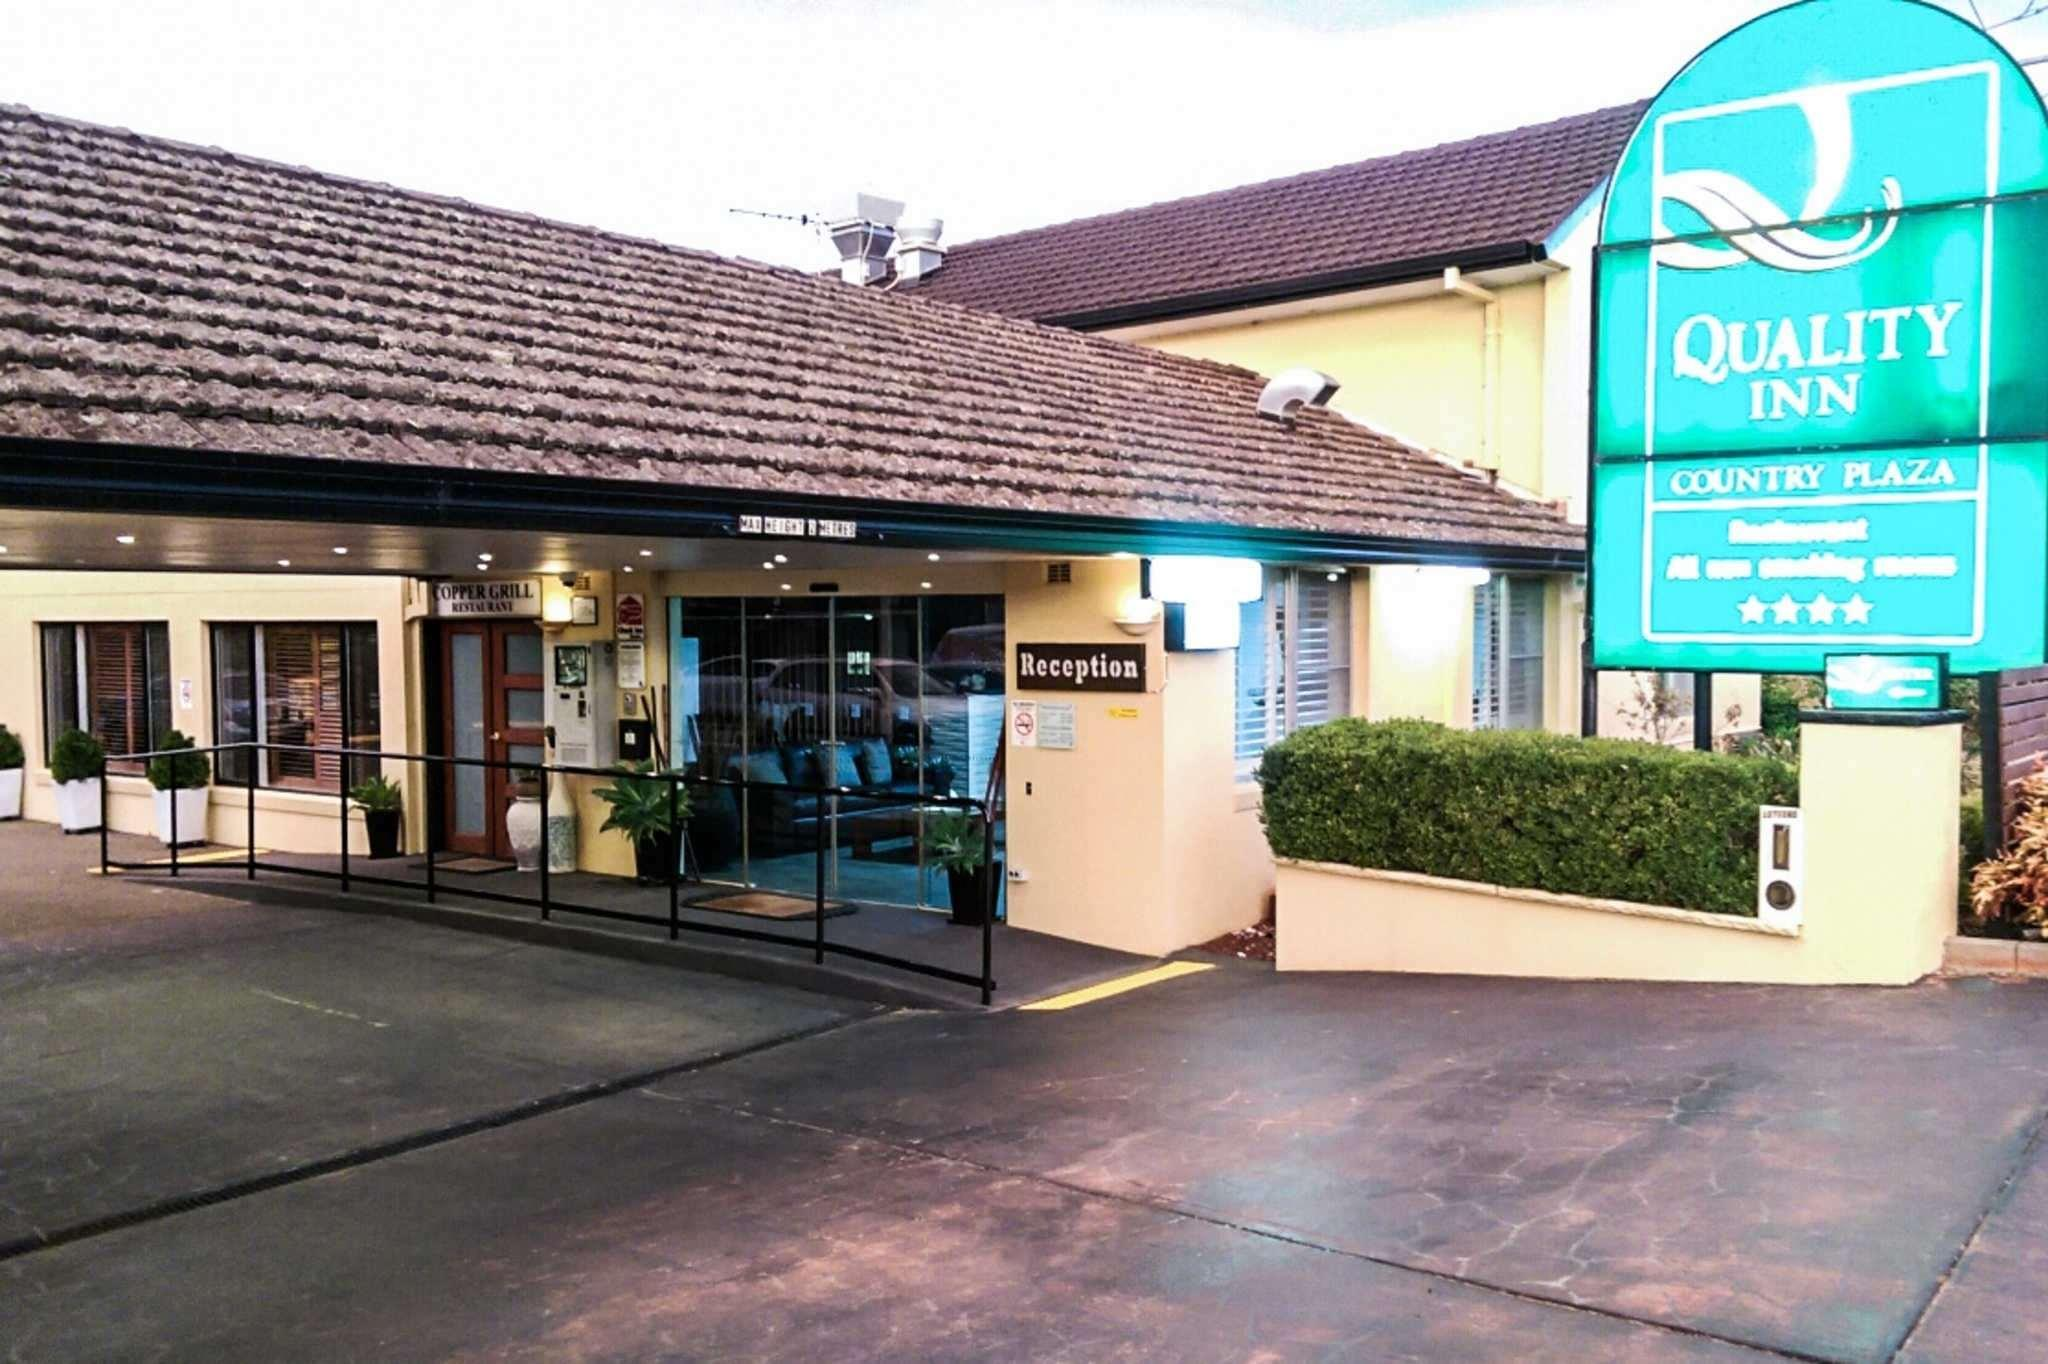 Quality Inn Country Plaza Queanbeyan Reviews